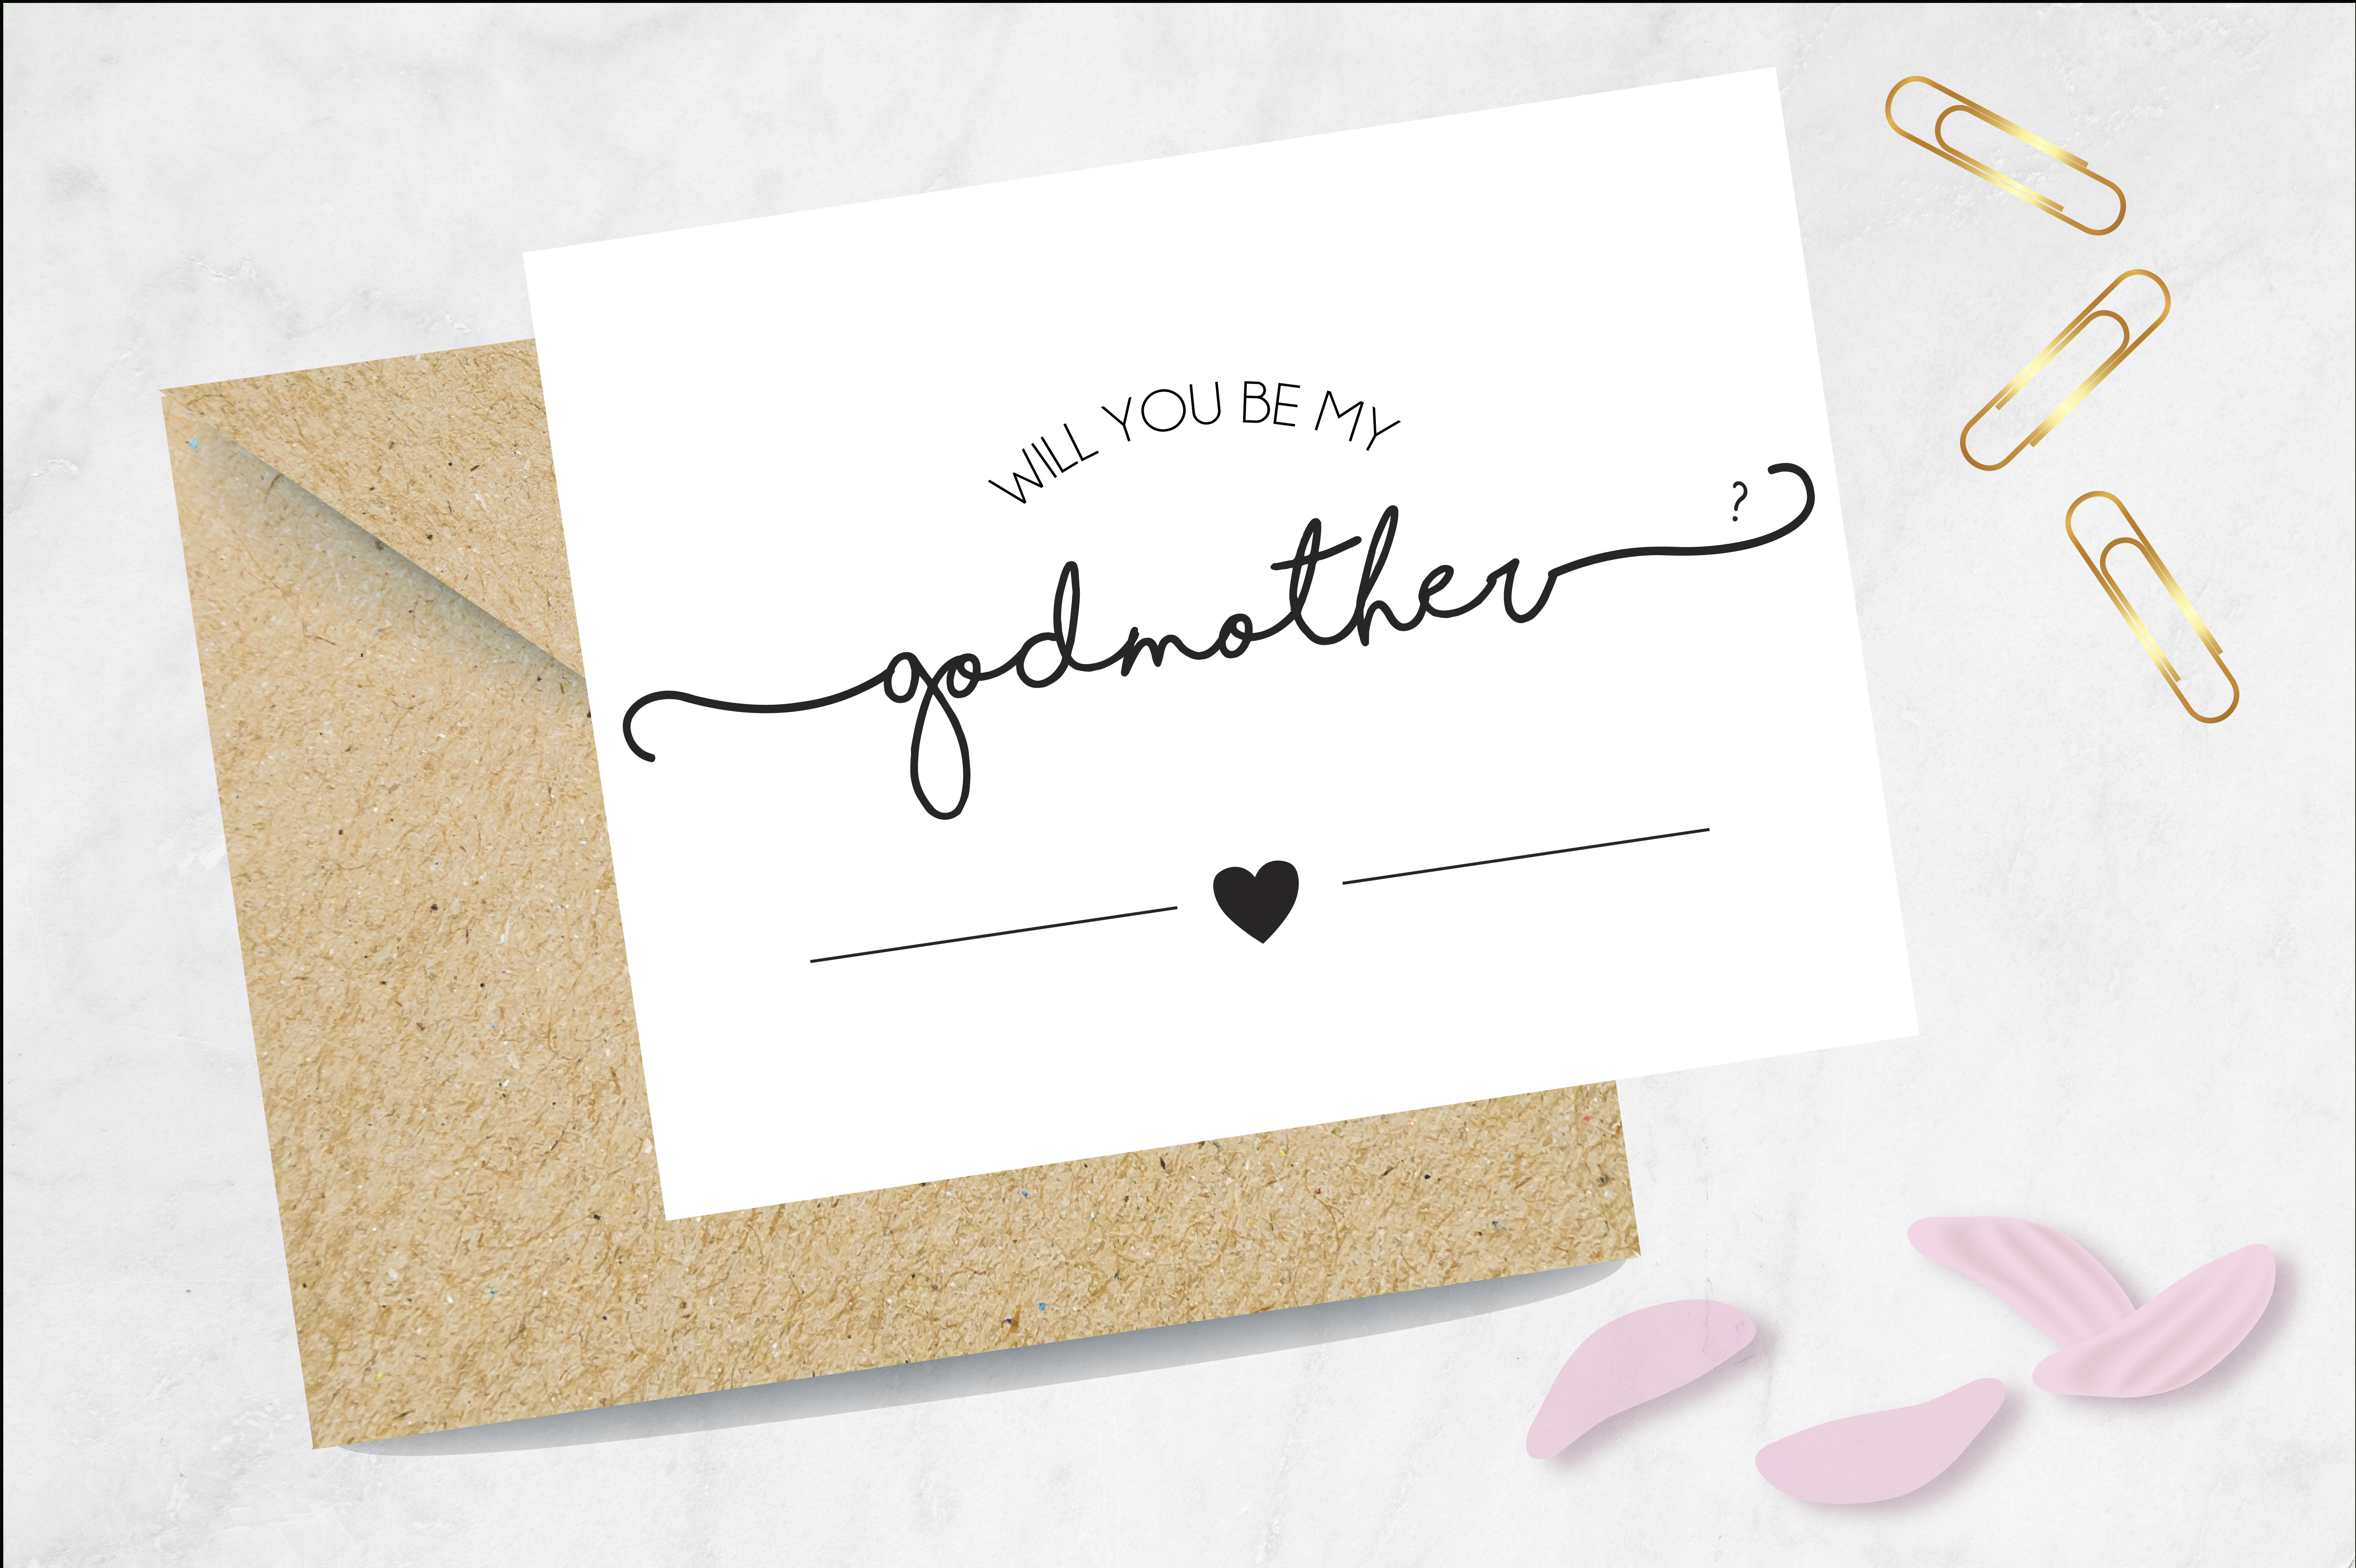 Godmother Proposal Card, Be My Godmother Card, Card For Godmother - Will You Be My Godmother Printable Card Free